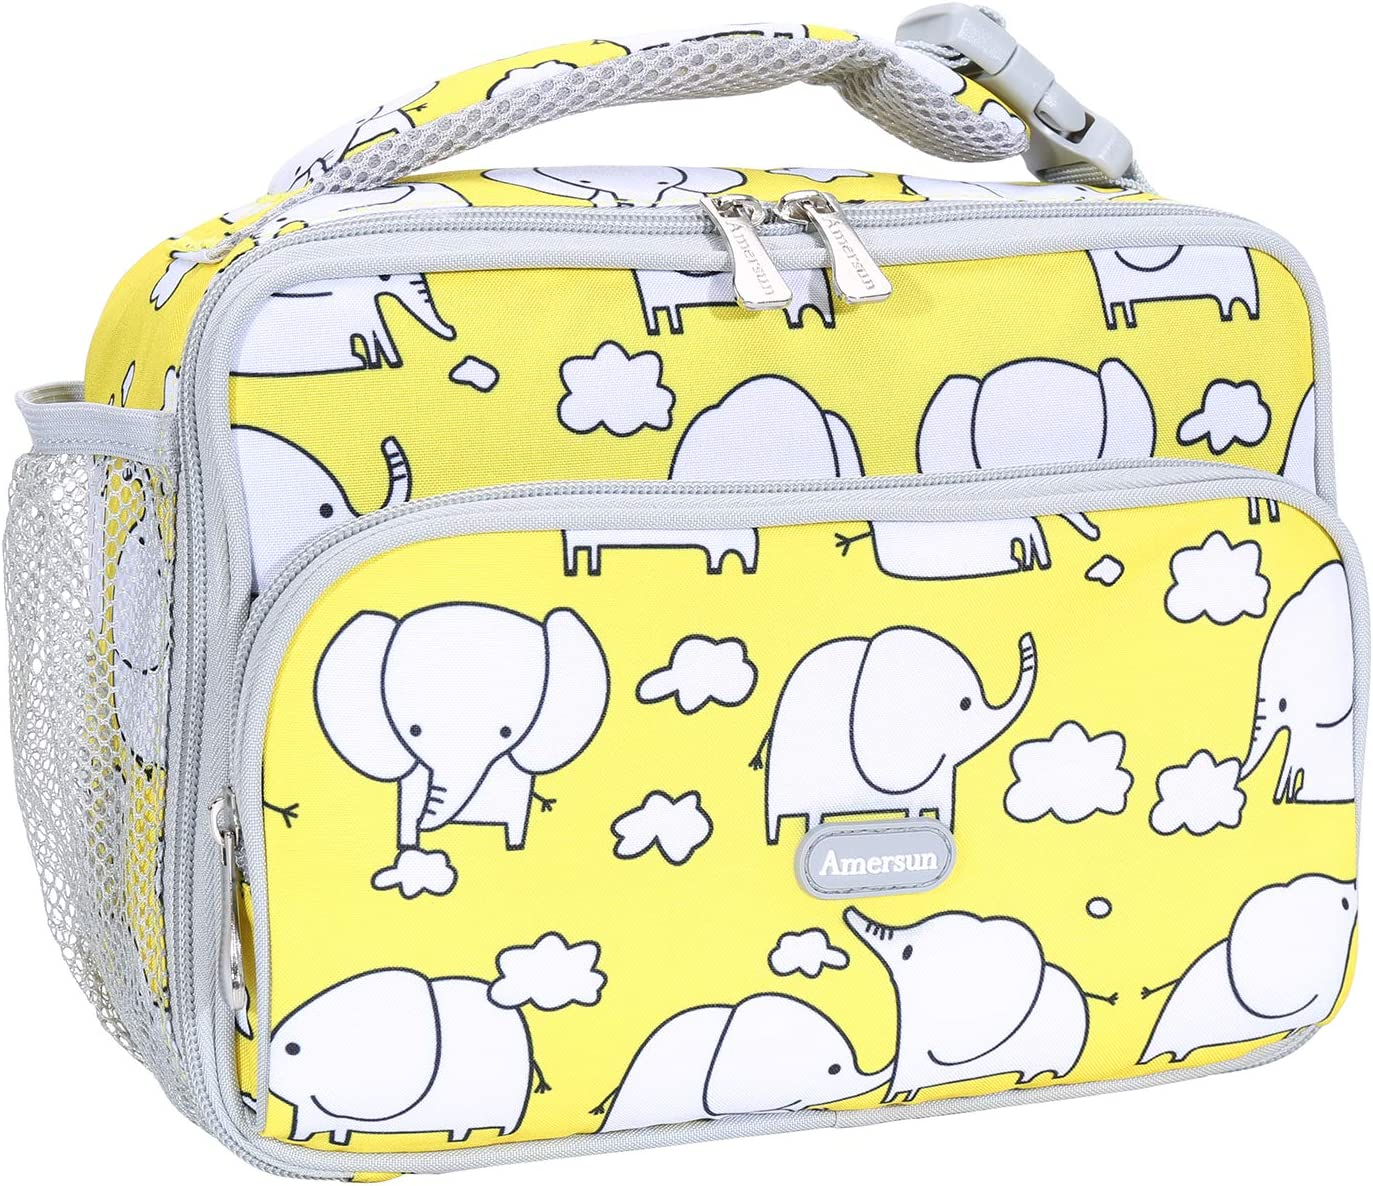 Amersun Kids Lunch Box,Durable Insulated School Lunch Bag with Padded Liner Keeps Food Hot Cold for Long Time,Small Thermal Travel Lunch Cooler for Girls Boys-2 Pocket,Cartoon elephant